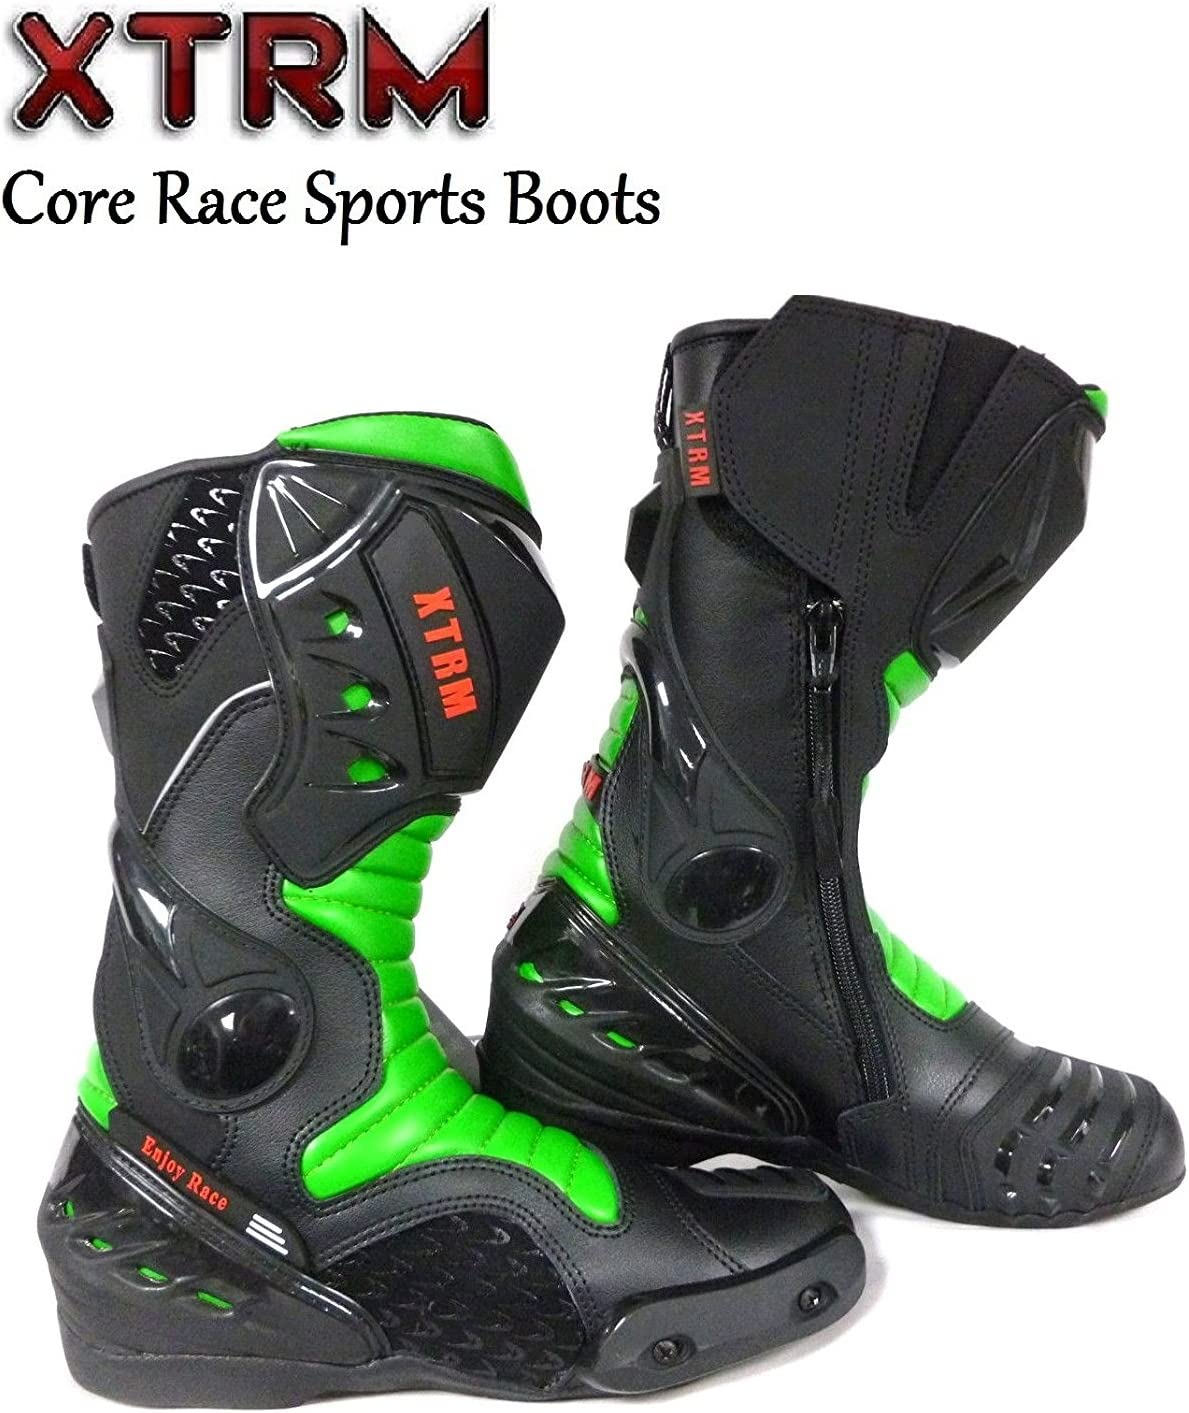 XTRM MOTORBIKE CORE ADULT BOOTS Motorcycle On Road Quad Racing Touring Sports CE Armour Boots Black Green